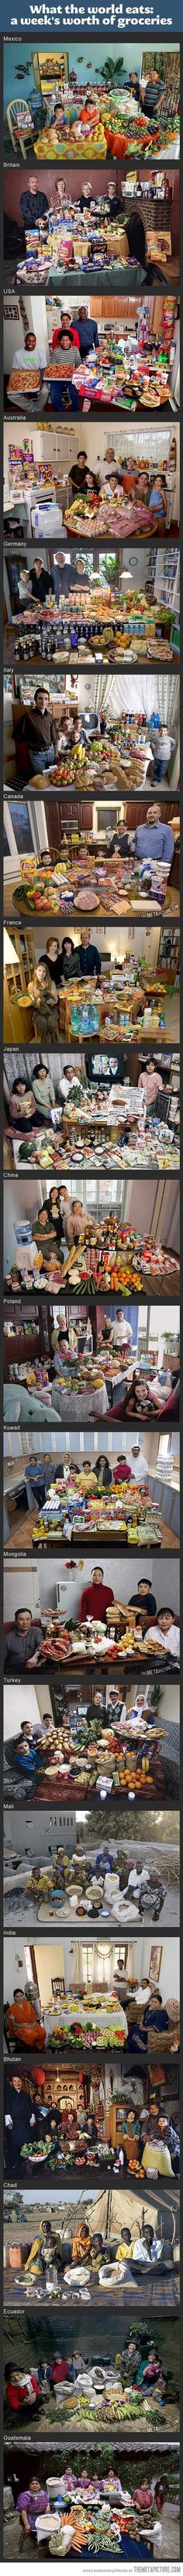 A week's worth of groceries around the world… Exercise in cultural awareness. So interesting